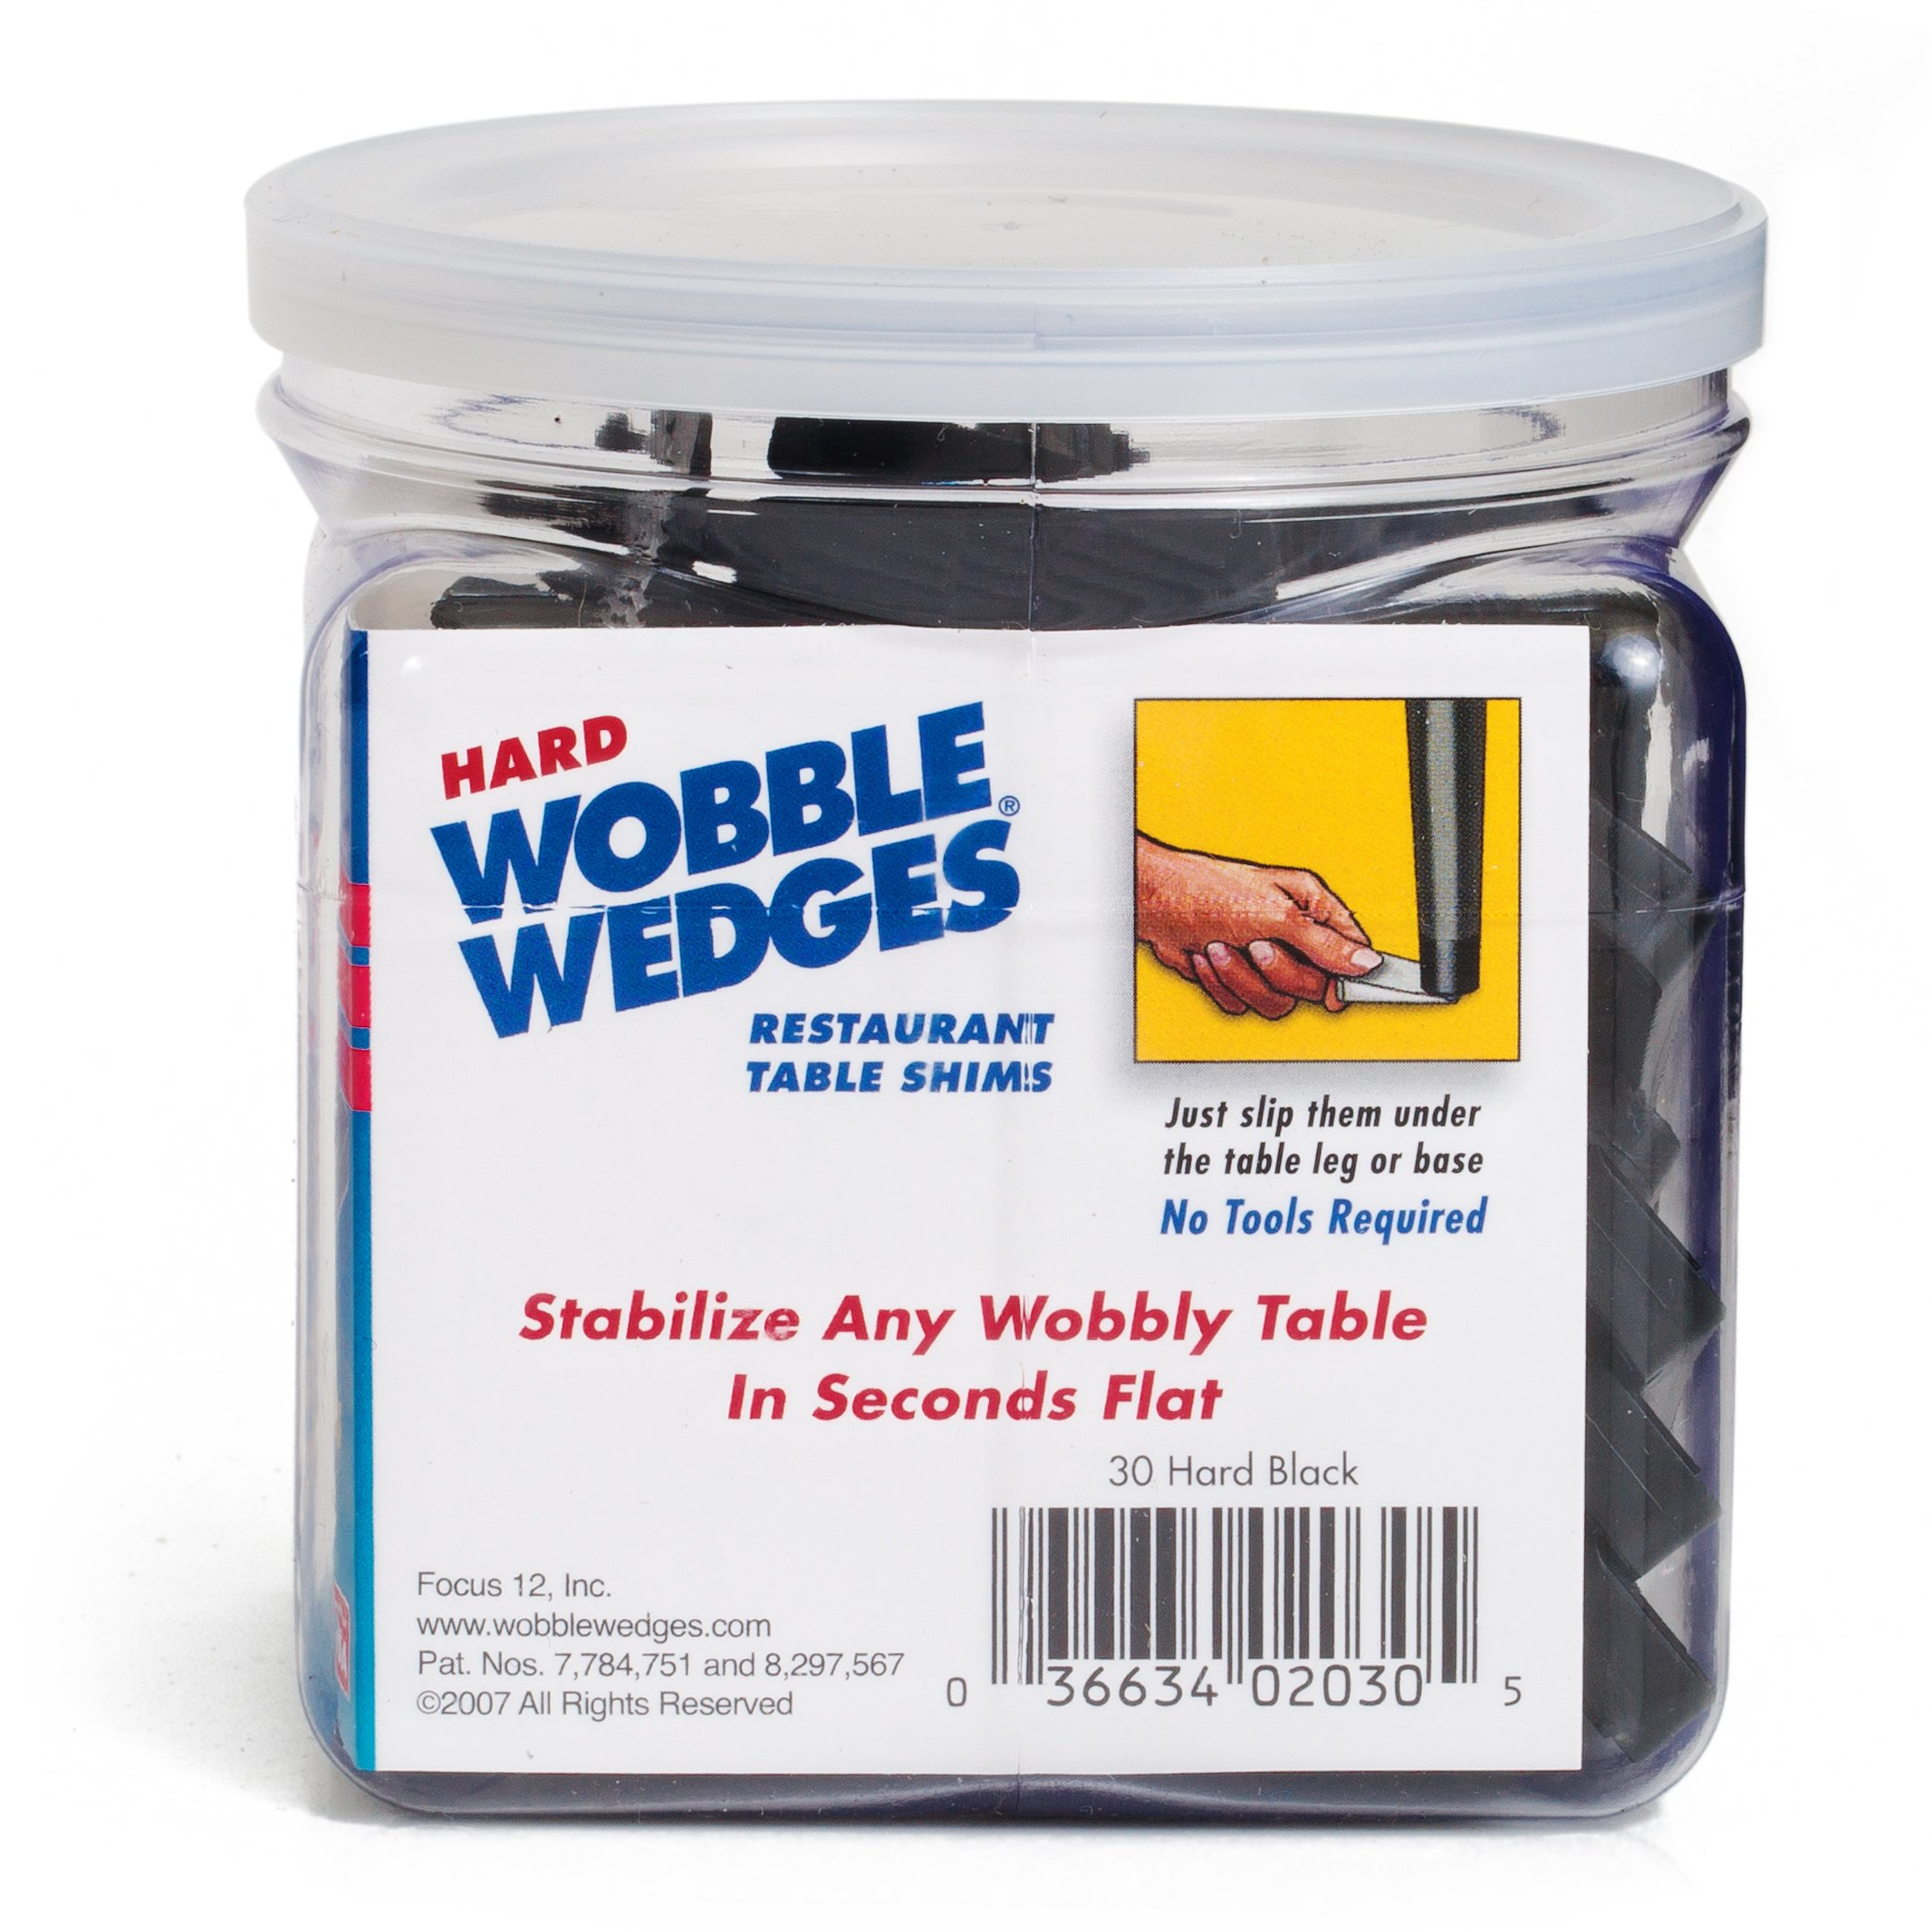 Wobble Wedge - Hard Black - Restaurant Table Shims - 30 Piece Jar by WOBBLE WEDGES (Image #2)